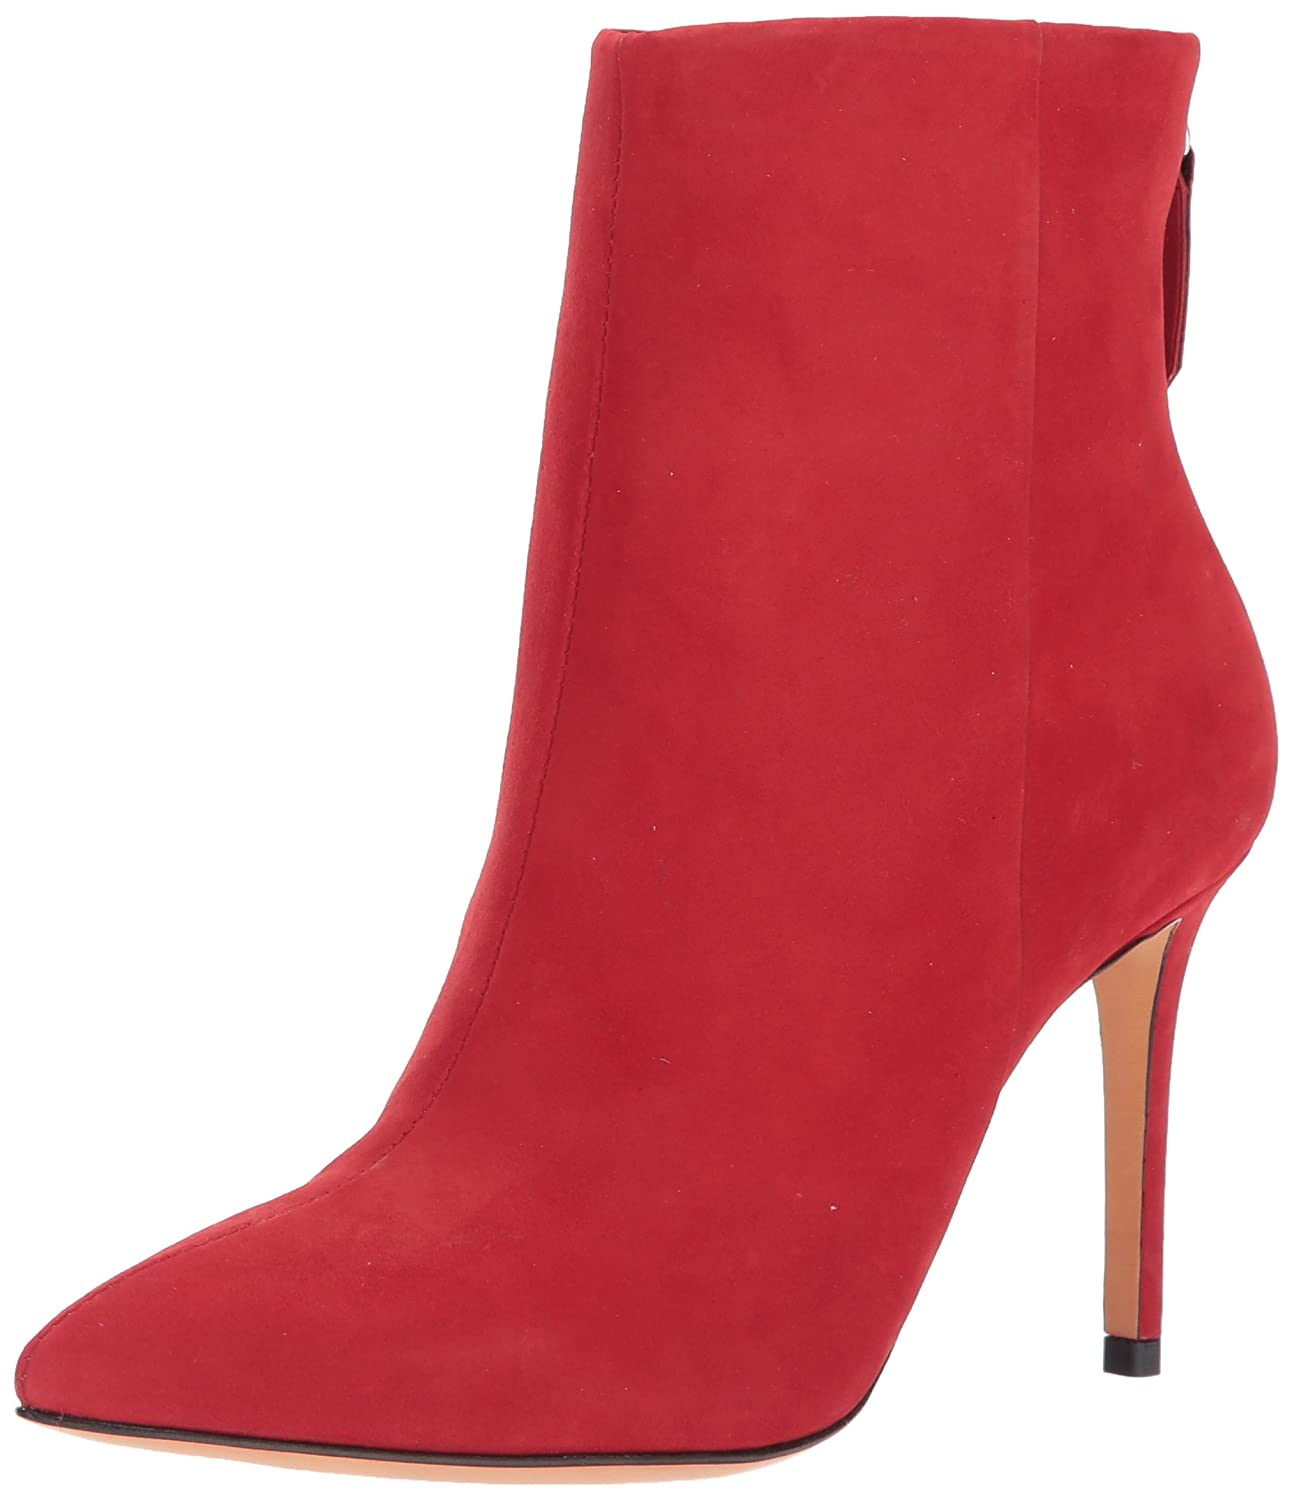 SCHUTZ Women's Ginny Fashion Boot B0725FZYRV 9 B(M) US|Scarlet